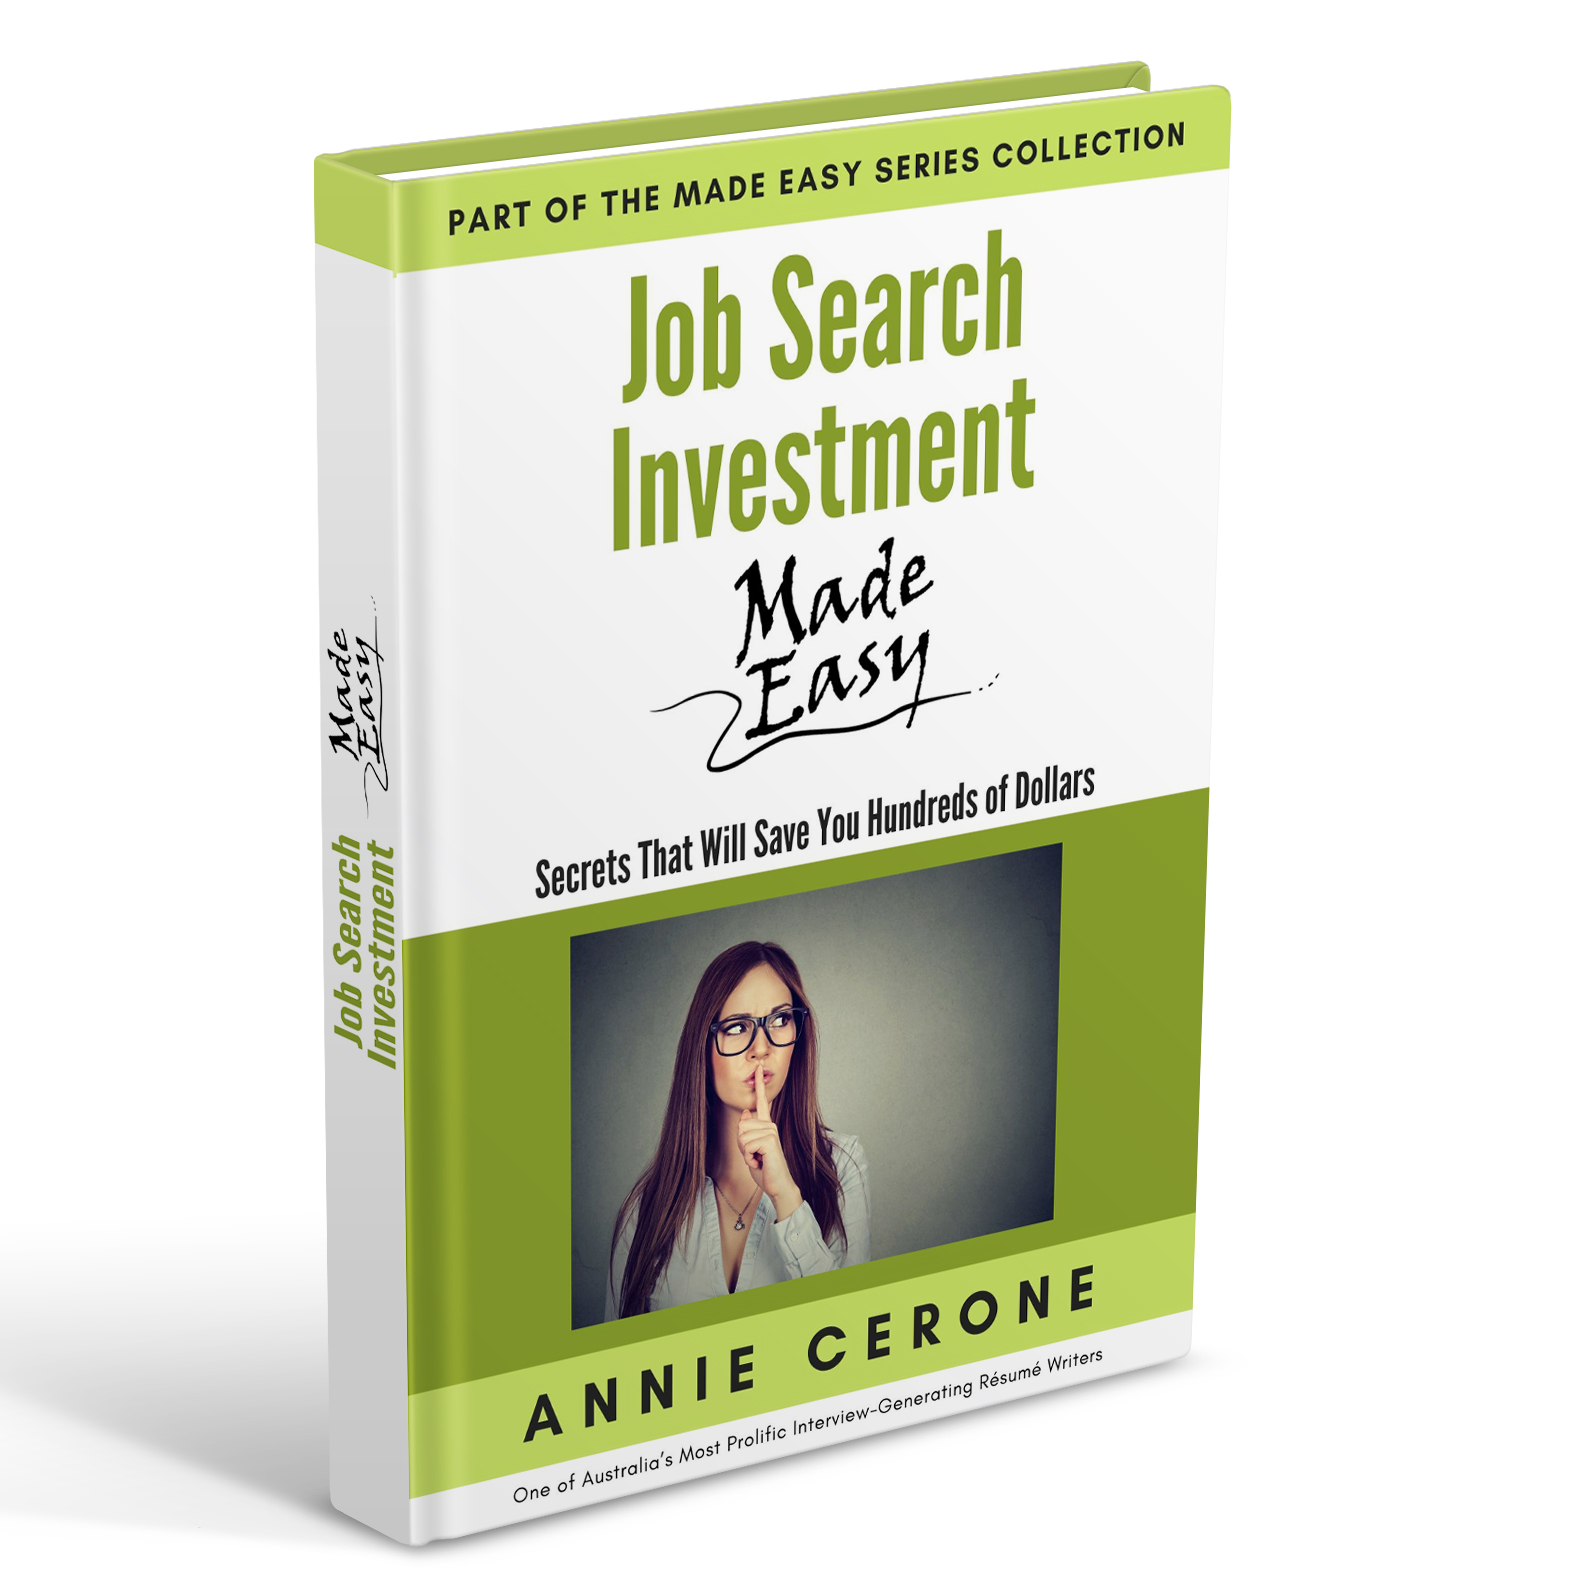 Job Search Investment Made Easy eBook: Secrets that will save you hundreds of dollars